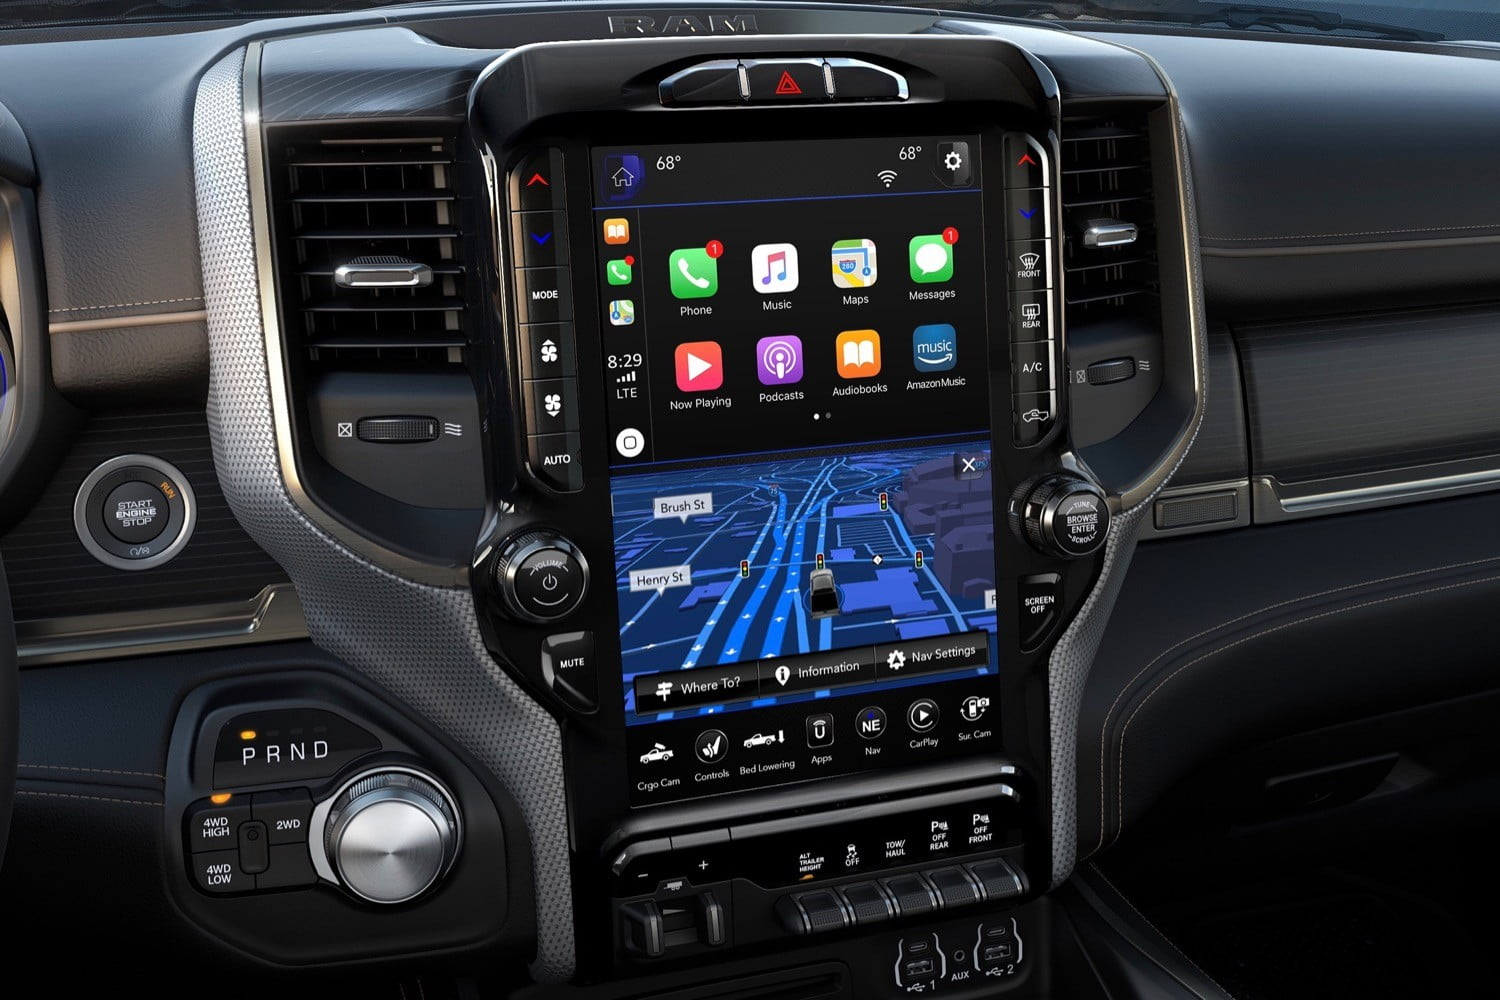 Best Infotainment Systems In 2020 Cars And Trucks Digital Trends